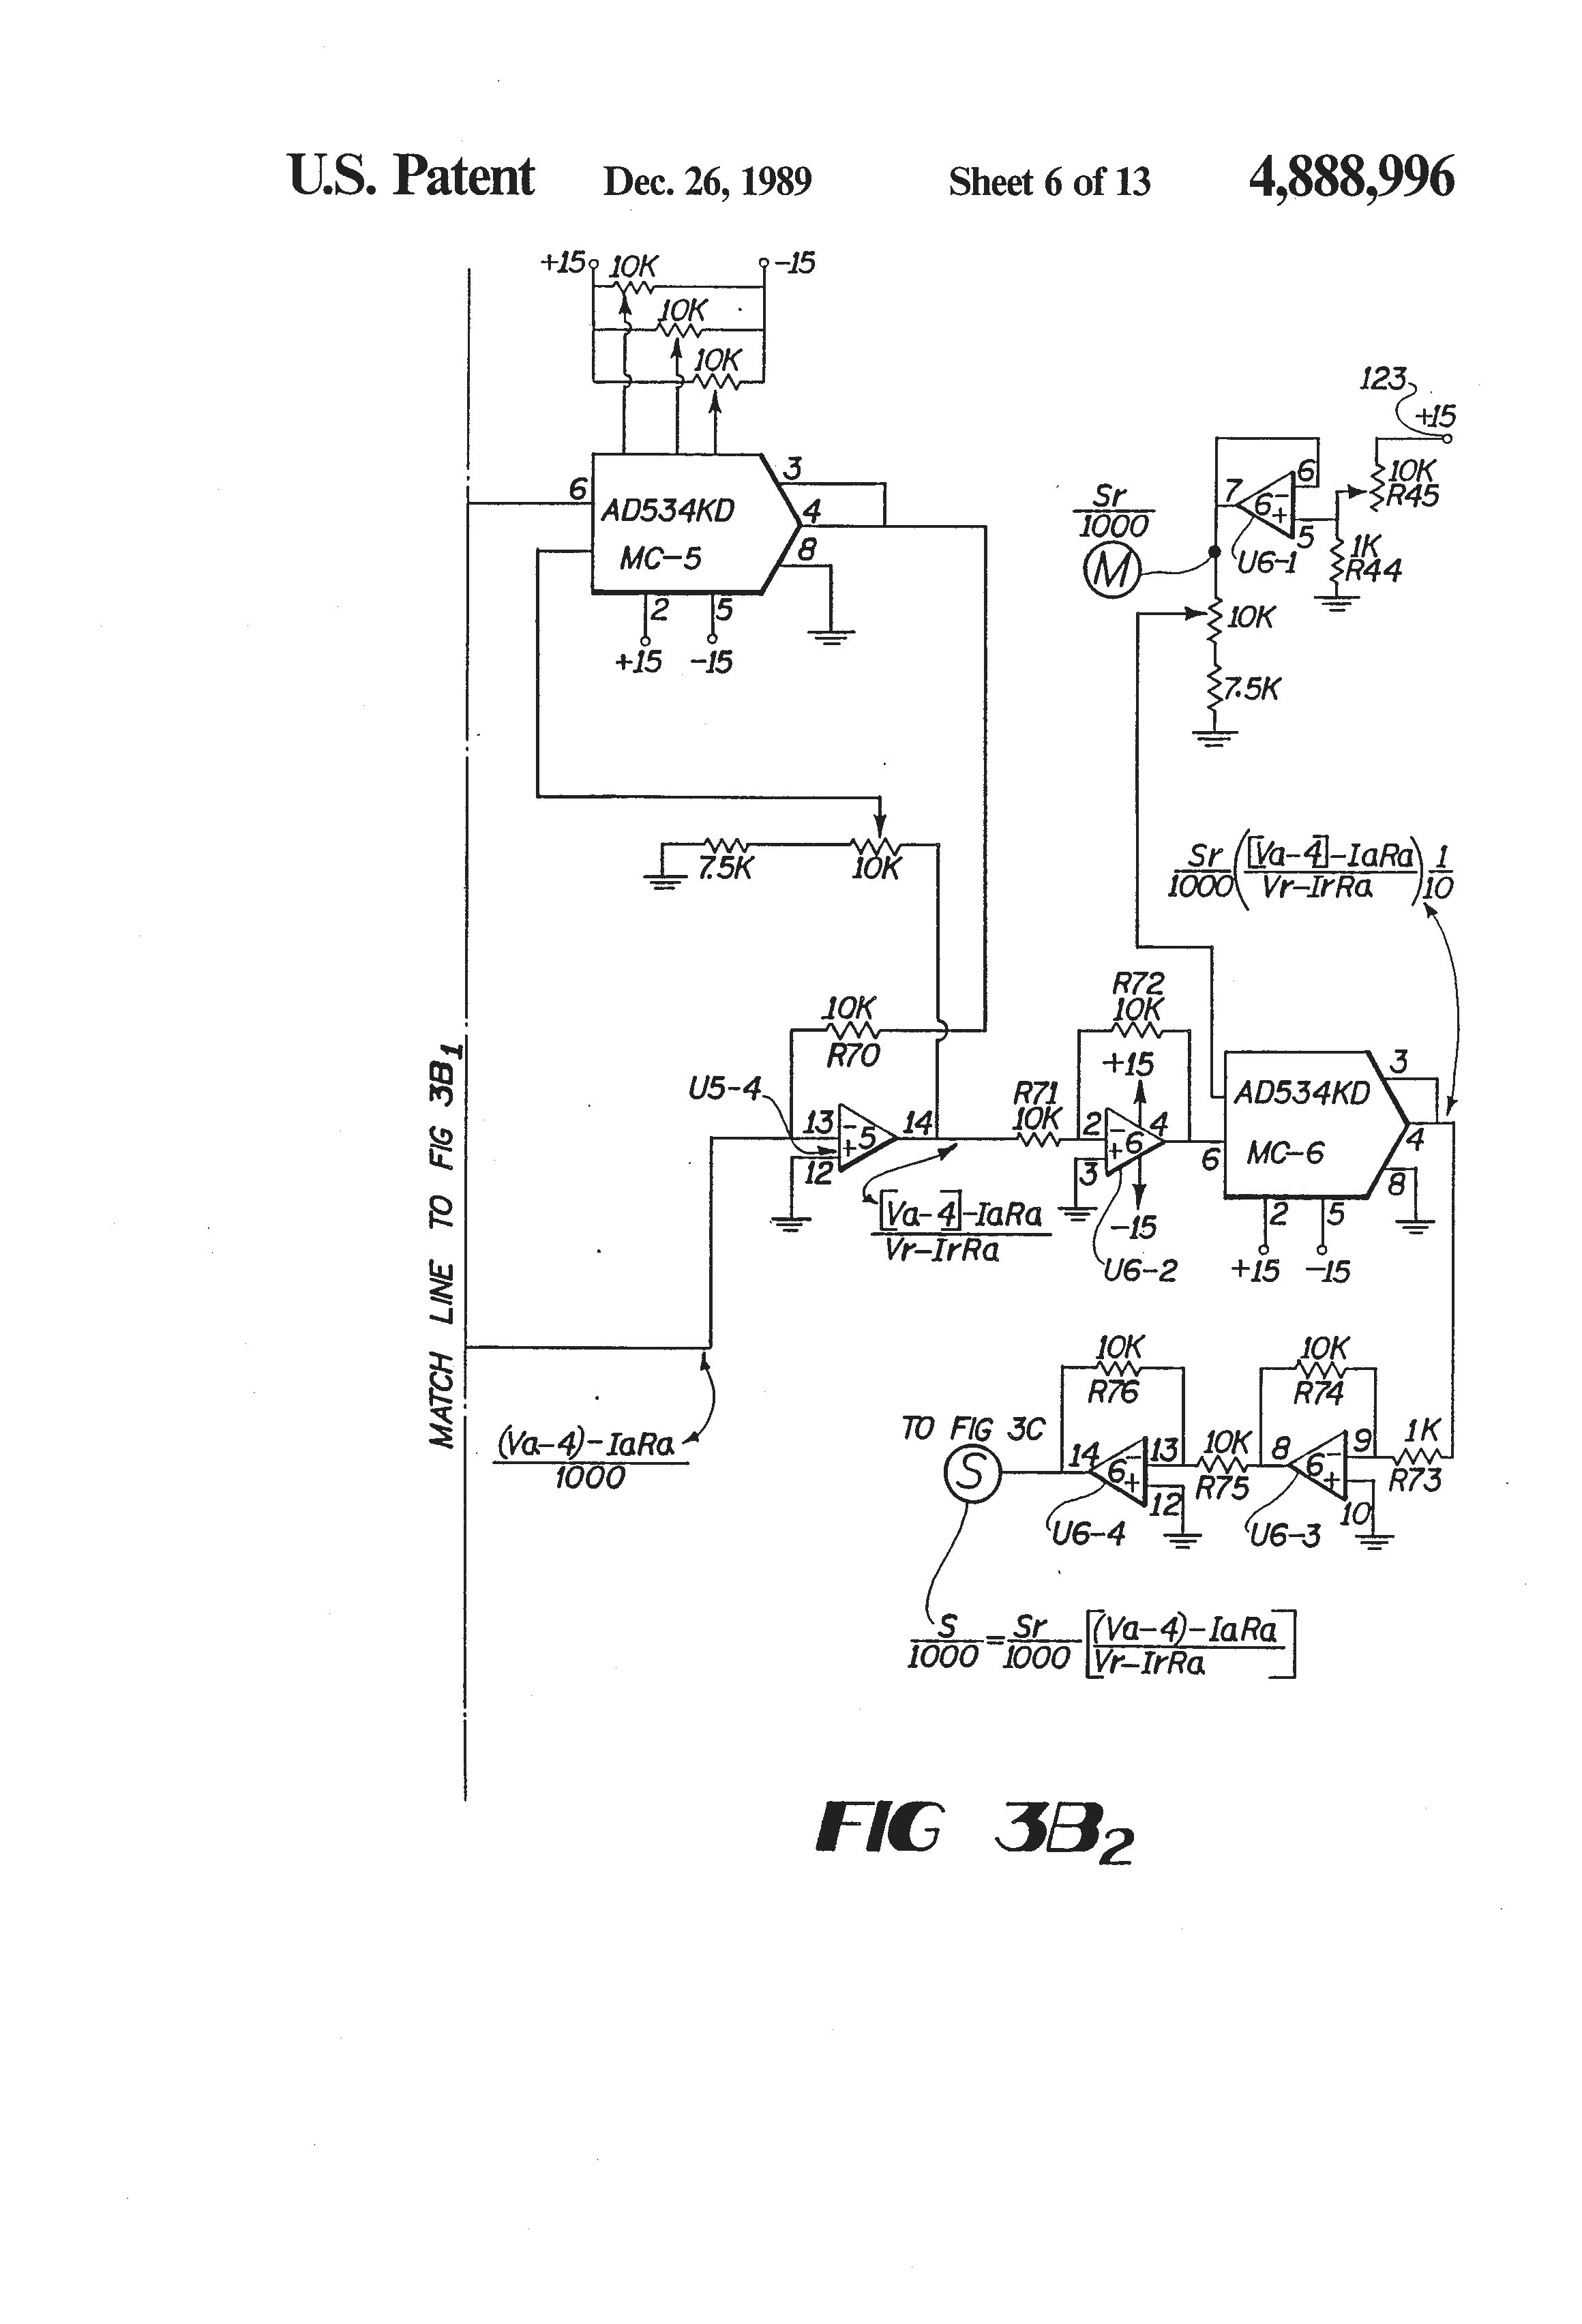 square d combination starter wiring diagram Collection-fantastic square d motor starter wiring diagram book ensign rh releaseganji net Main Breaker Panel Wiring Diagram Single Phase Motor Wiring Diagrams 6-i